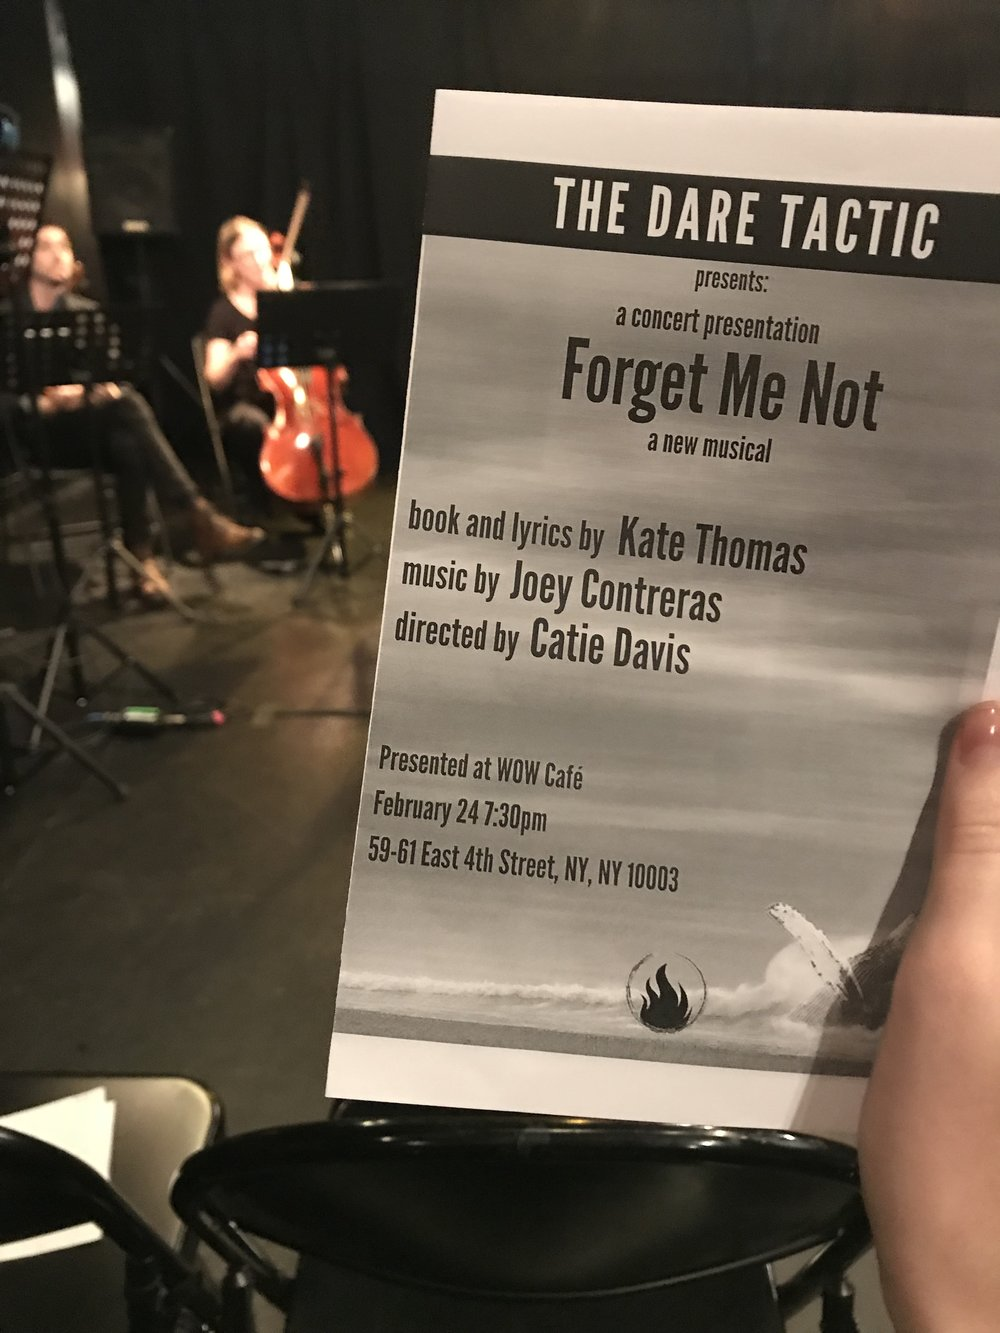 2/24/18 - Forget Me Not recieves a developmental concert with the Dare Tactic at WOW Cafe in the east village!